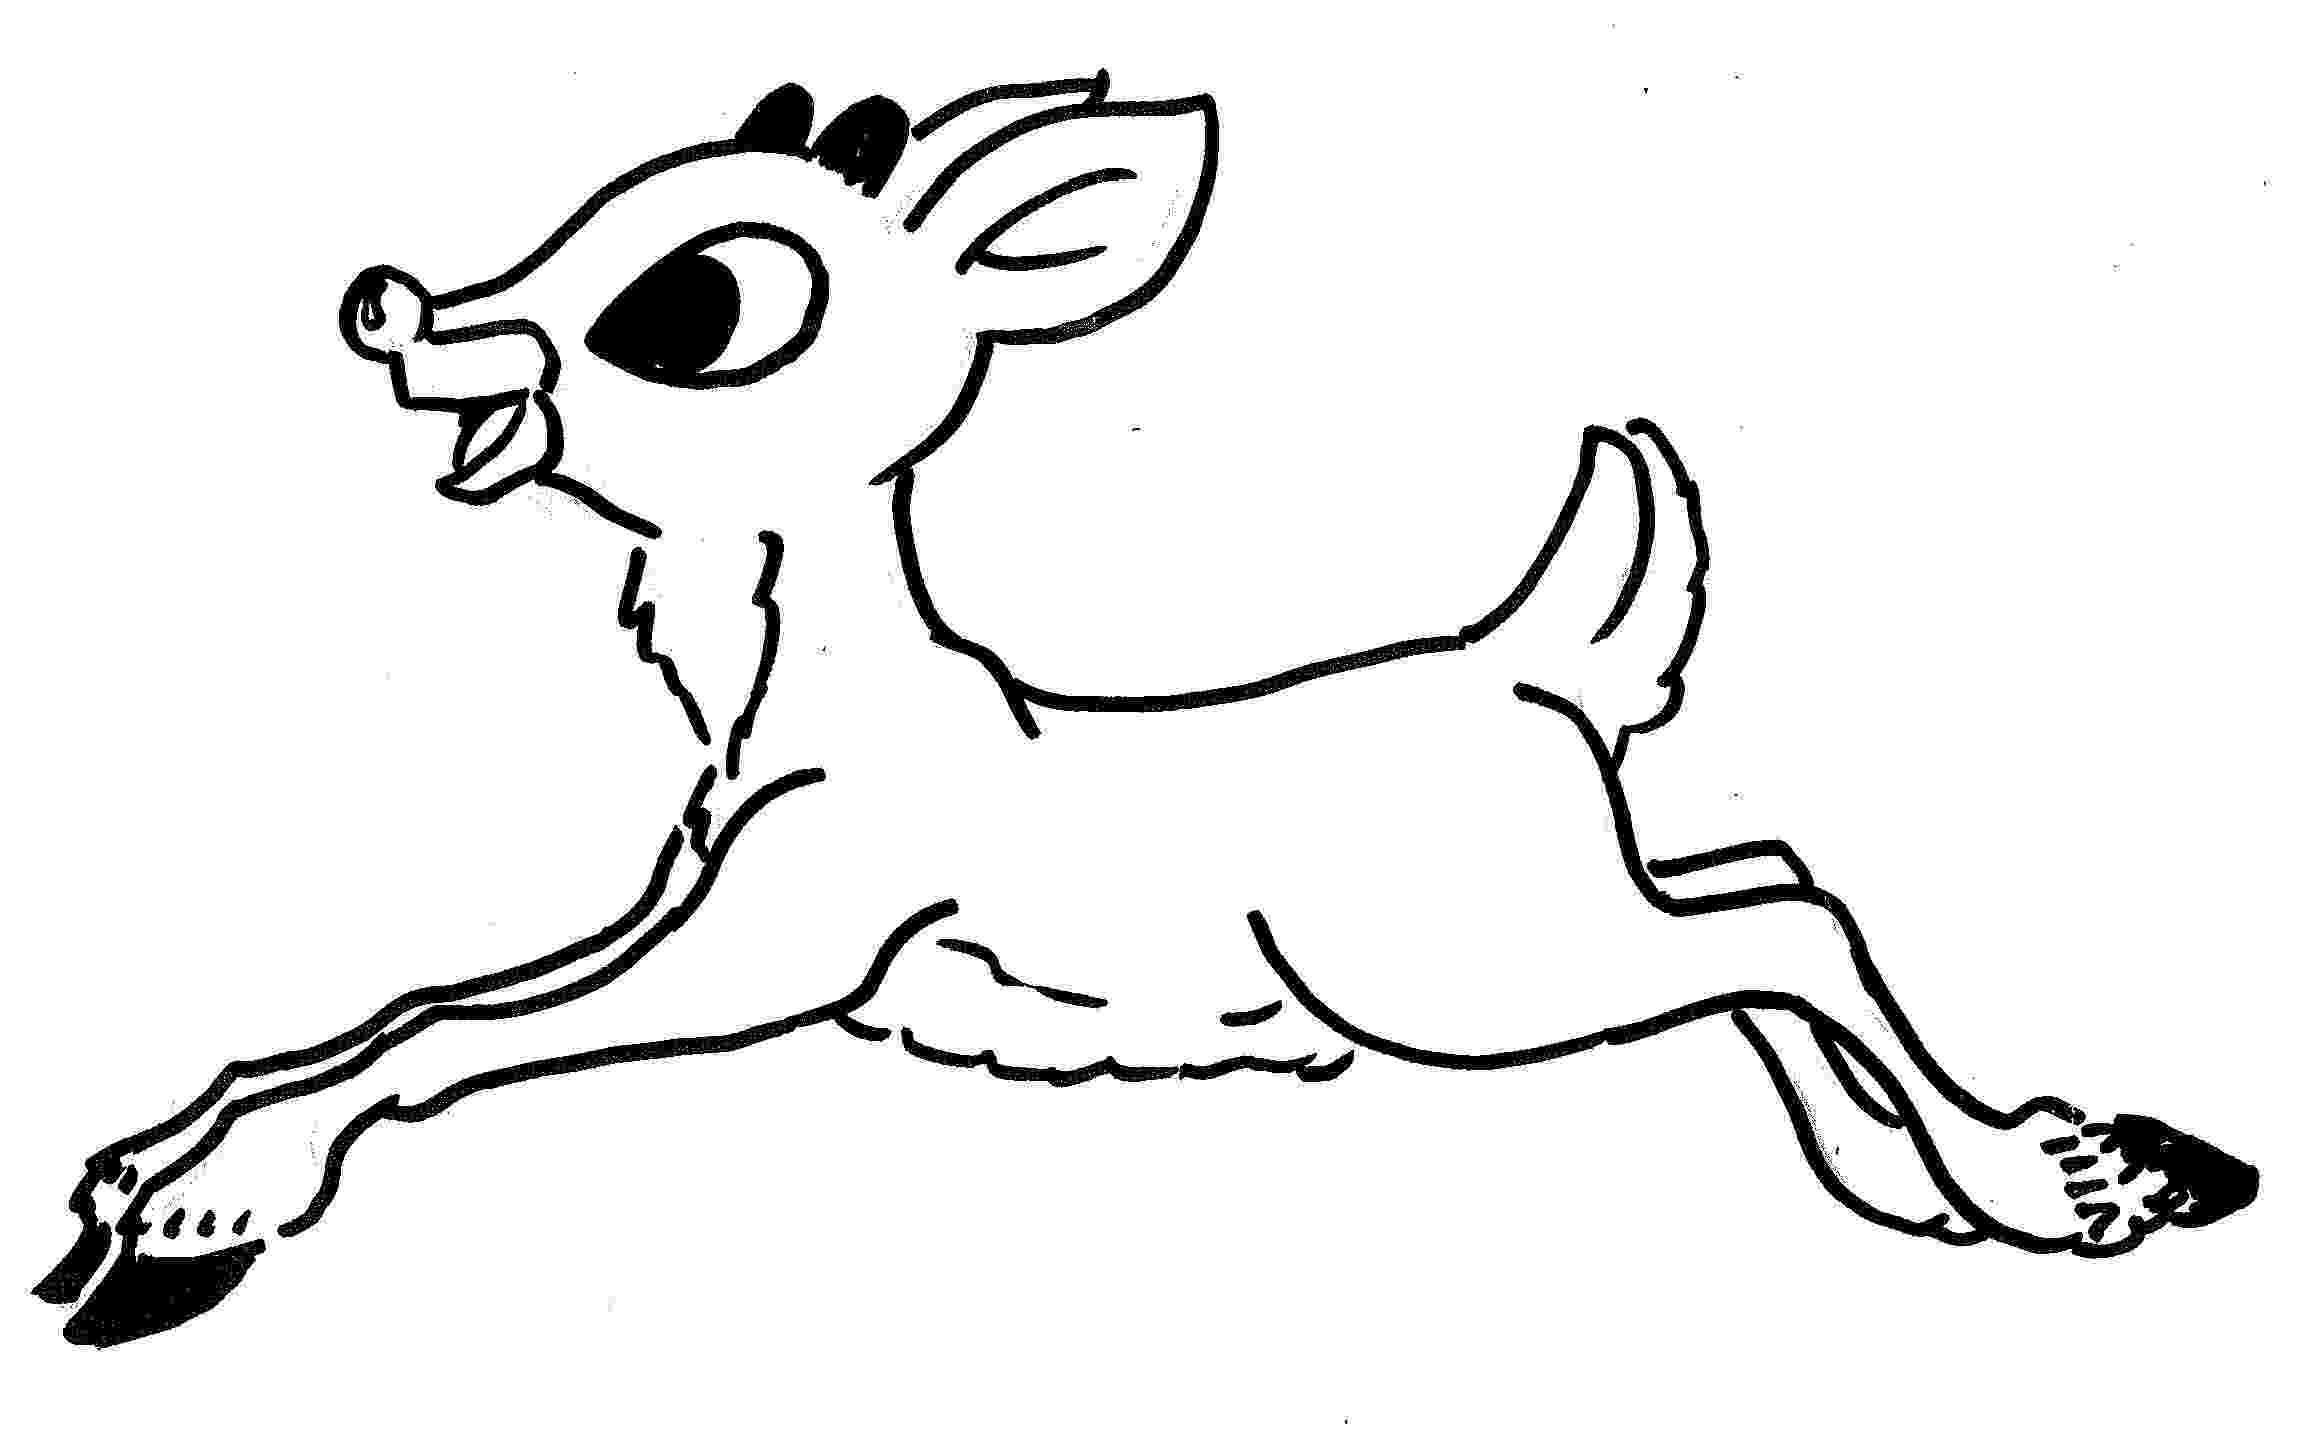 colouring pages christmas reindeer christmas reindeer coloring pages reindeer pages colouring christmas